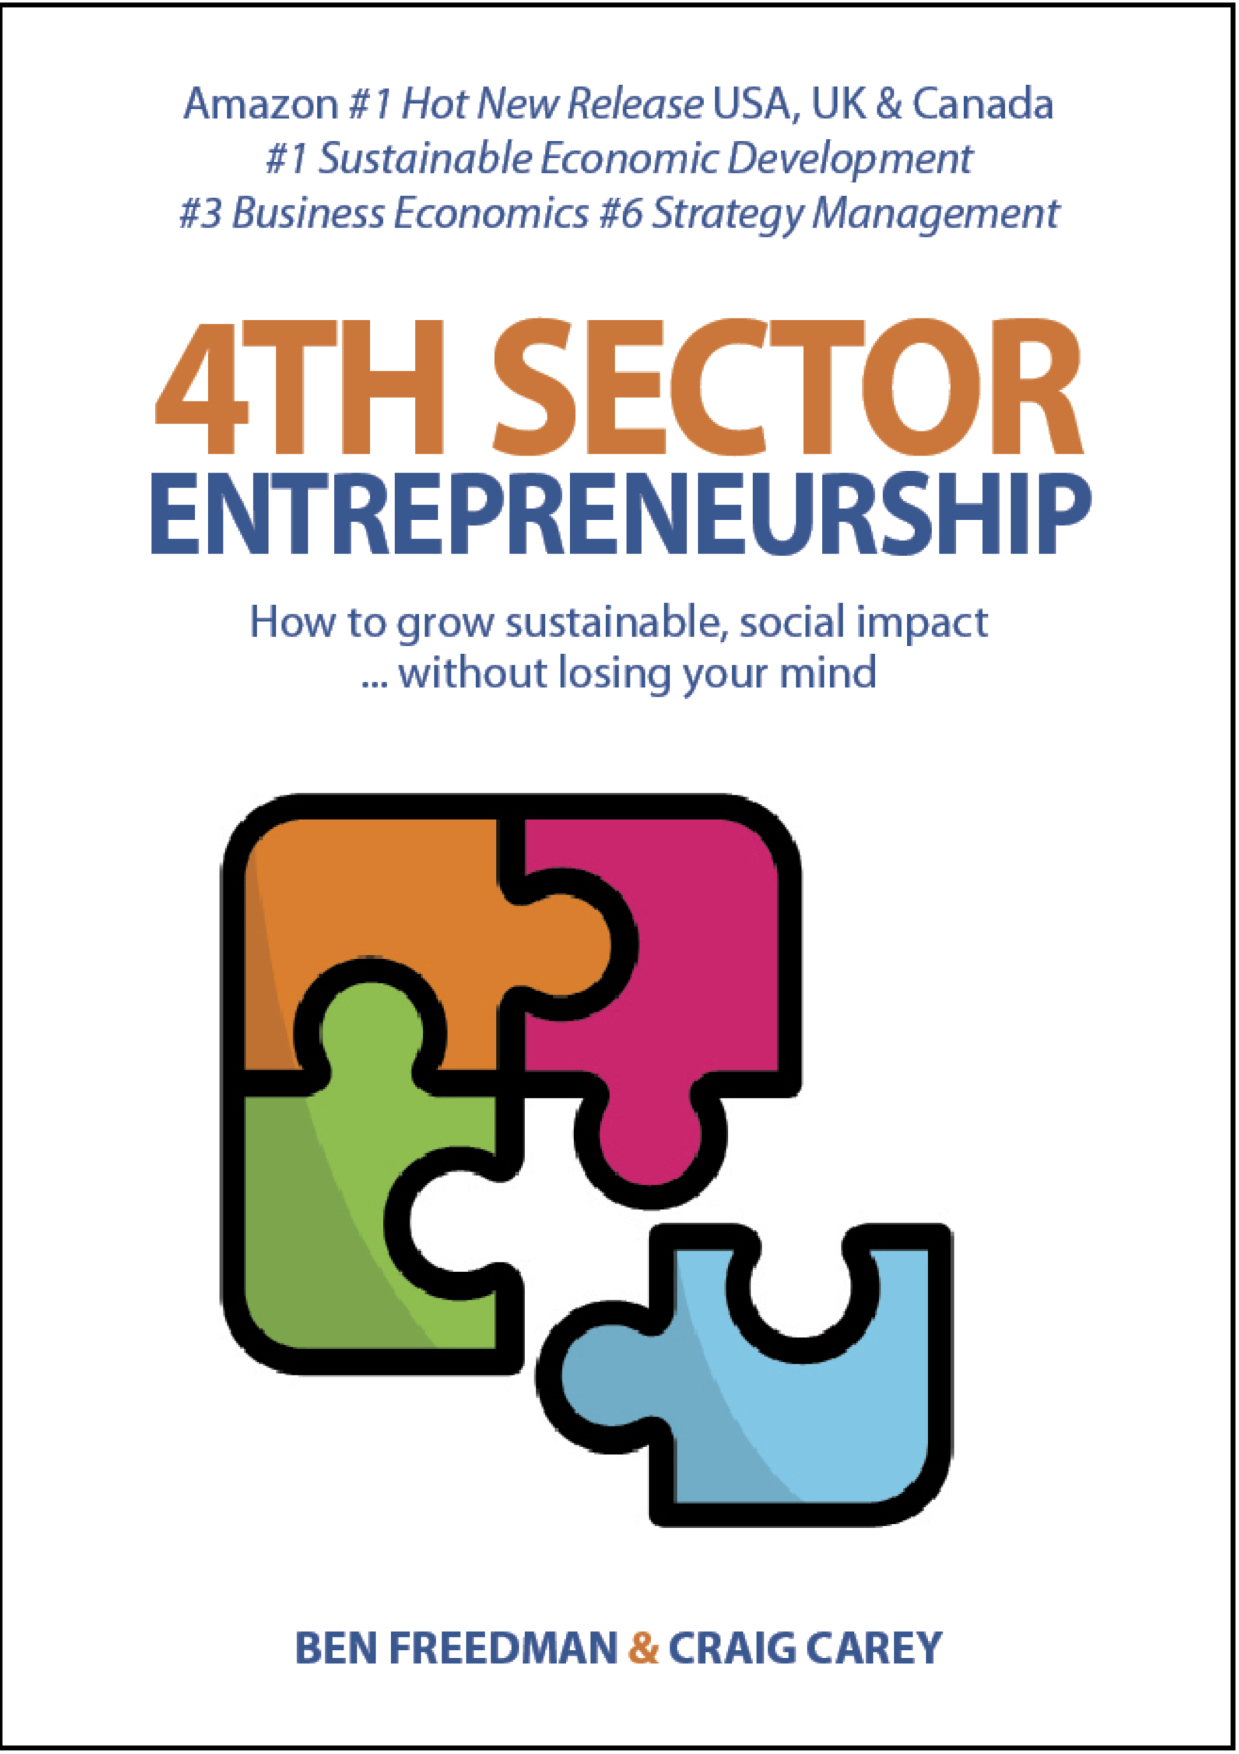 4th sector entrepreneurship